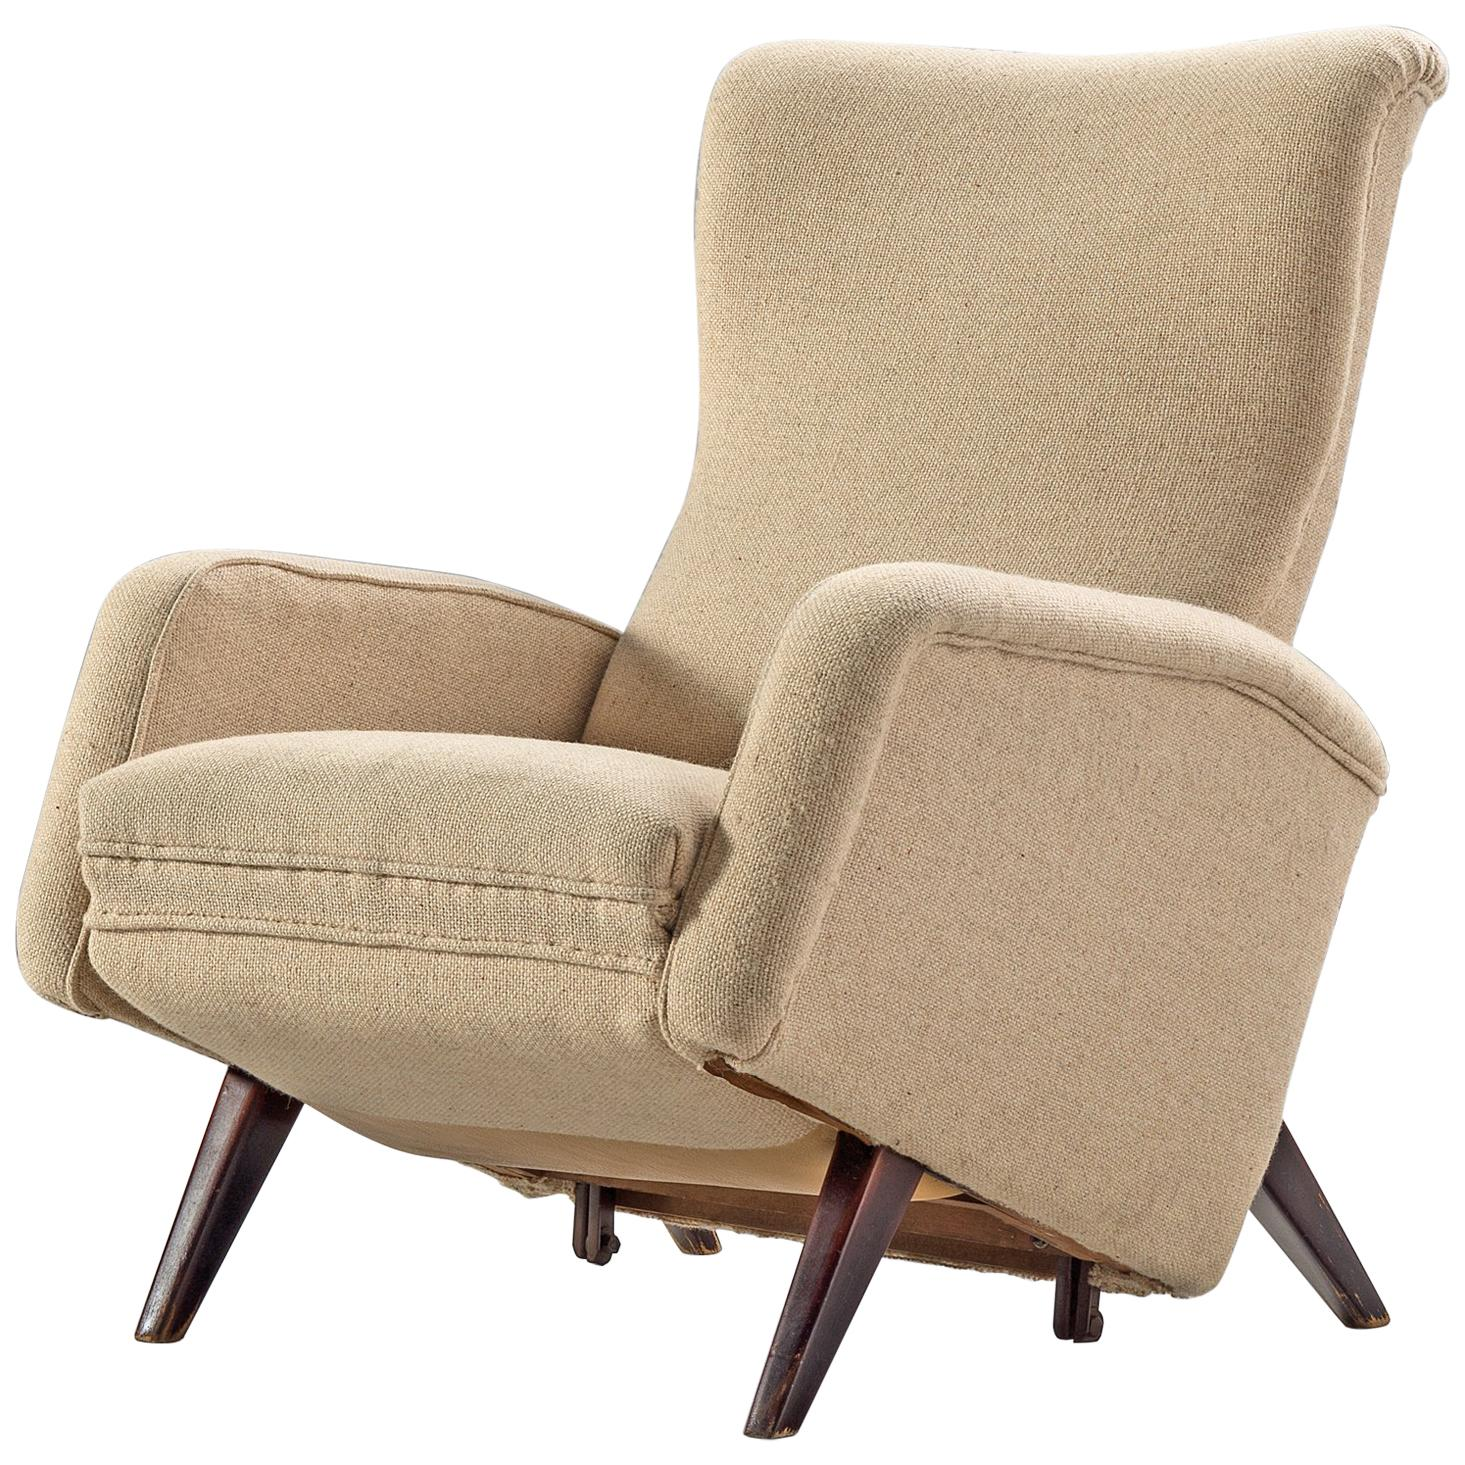 Italian Reclining Chair in Beige Upholstery, 1950s